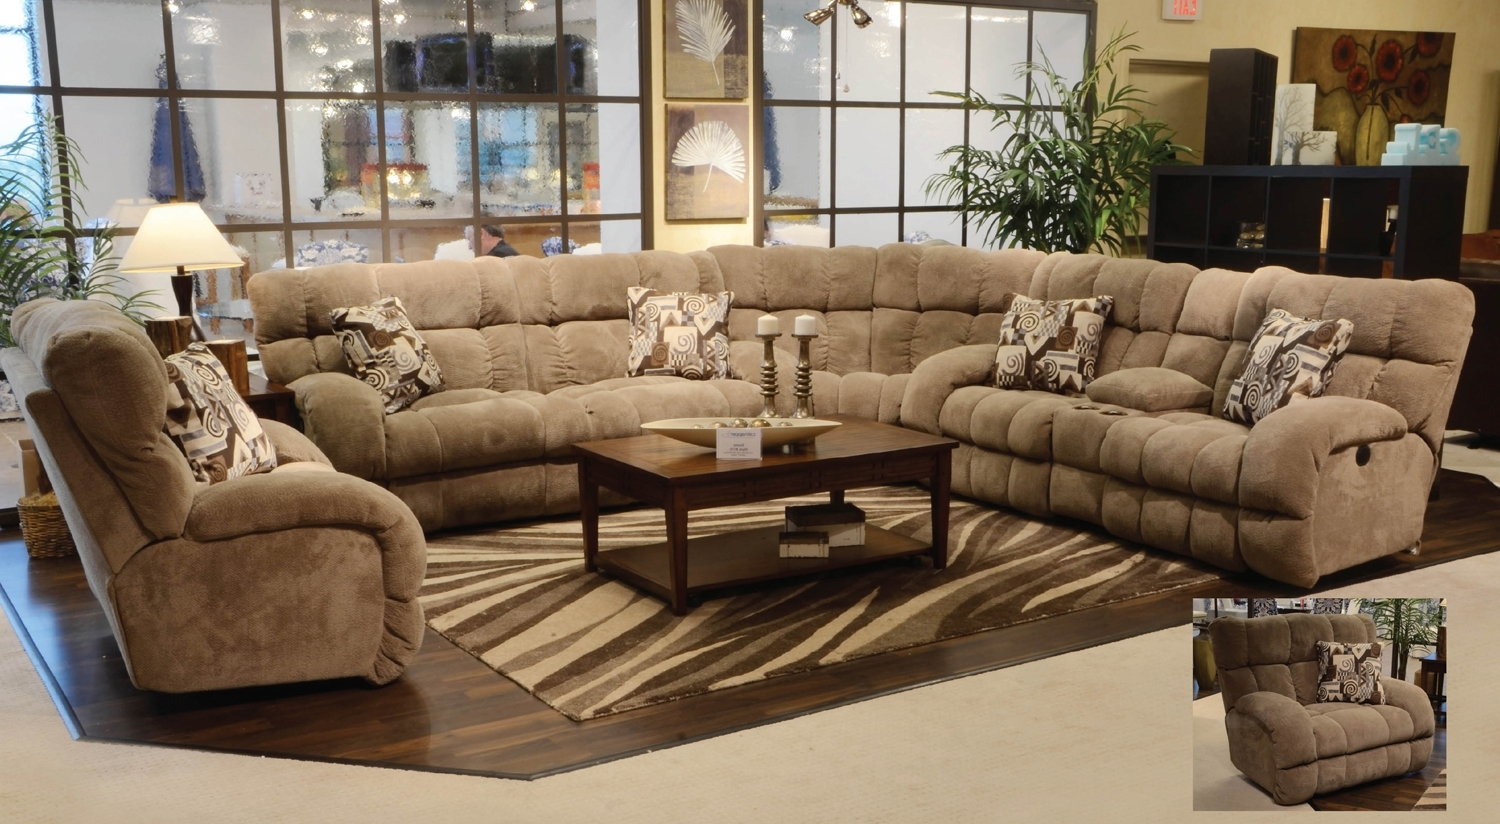 Deep Sofas With Chaise Throughout Famous Sofa ~ Comfy Deep Couches And Sofas (View 4 of 15)